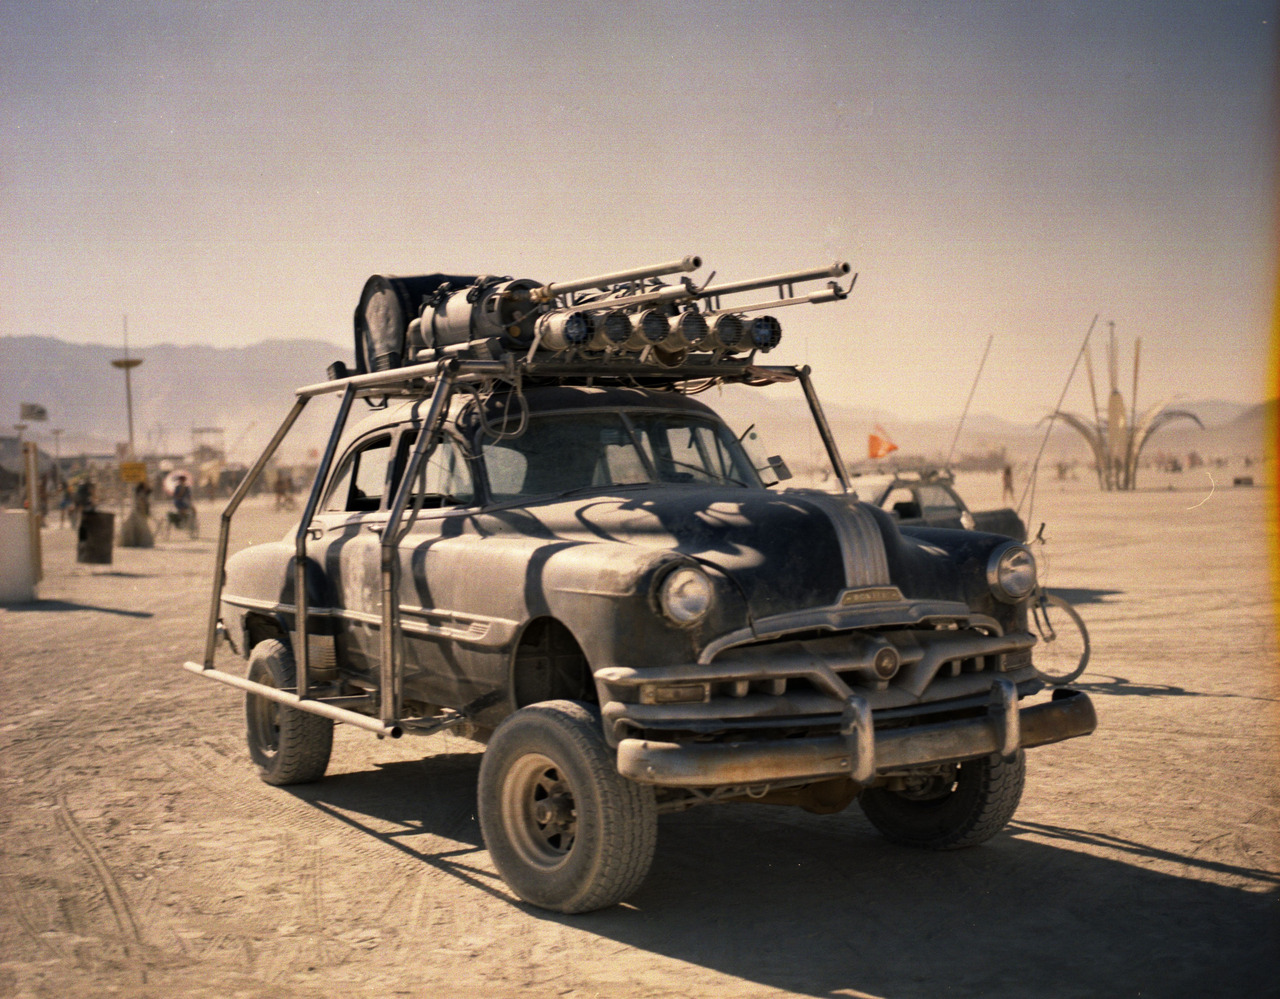 mad_max_4_fury_road_2015_possible_vehicle_by_maltian-d7tshvv.jpg